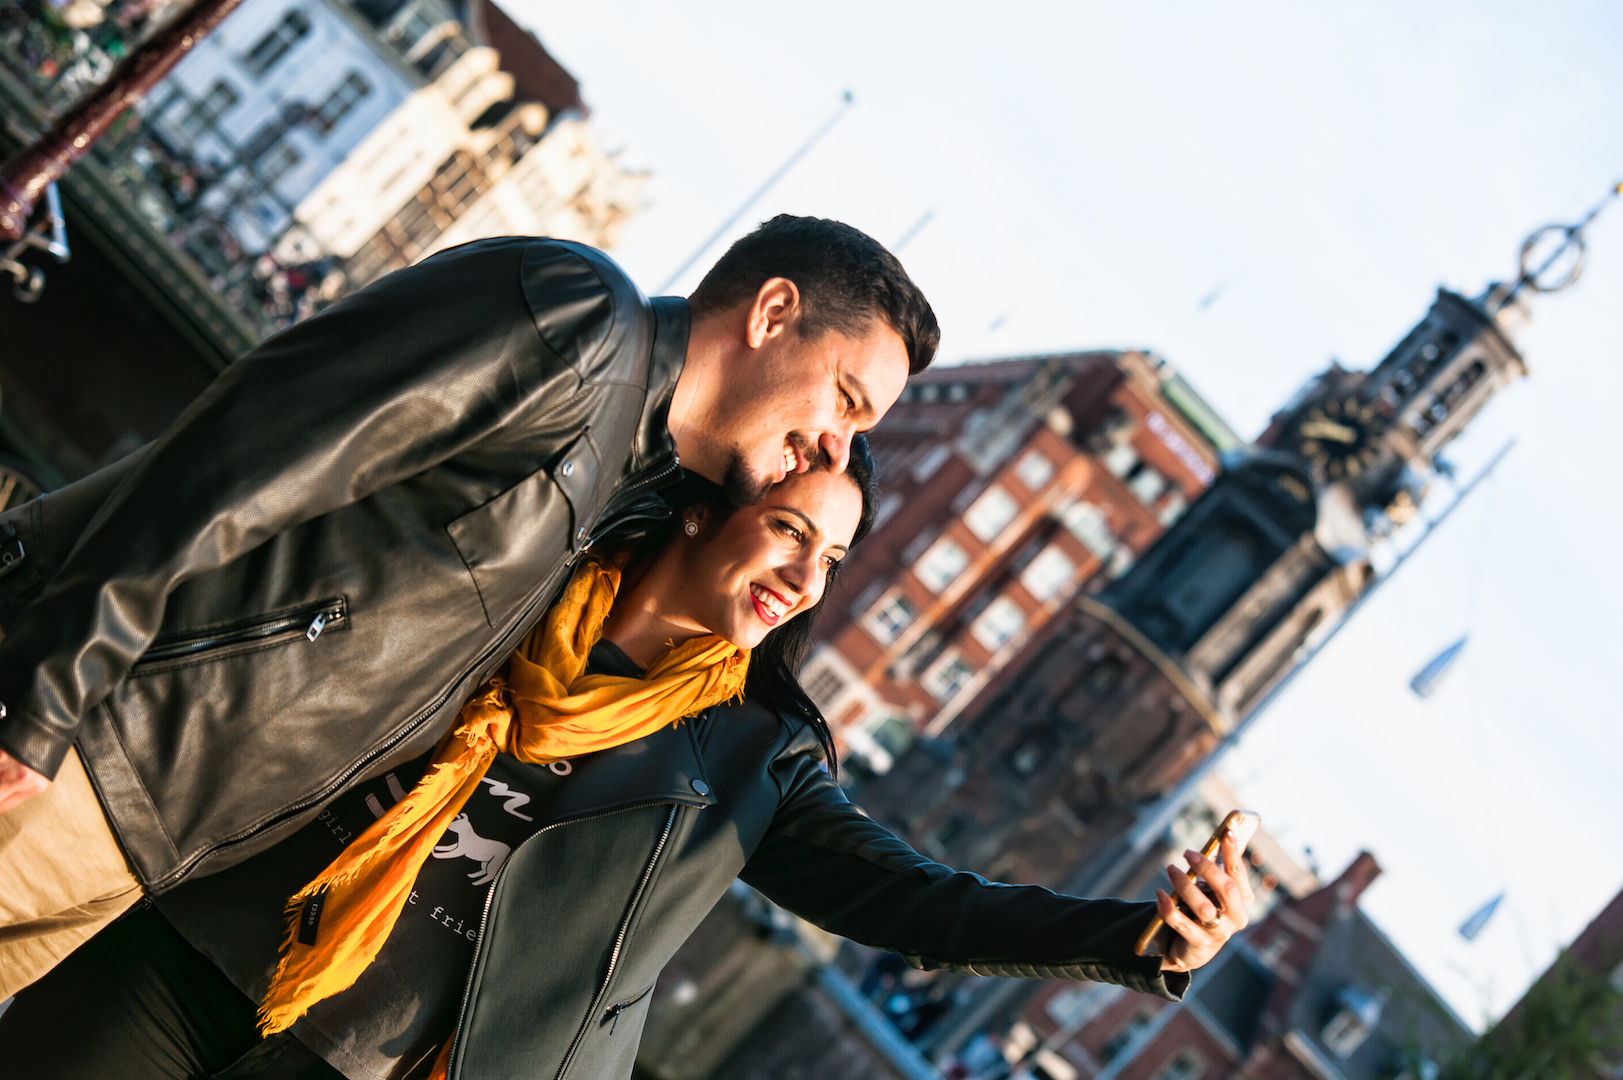 Couple on vacation in Amsterdam